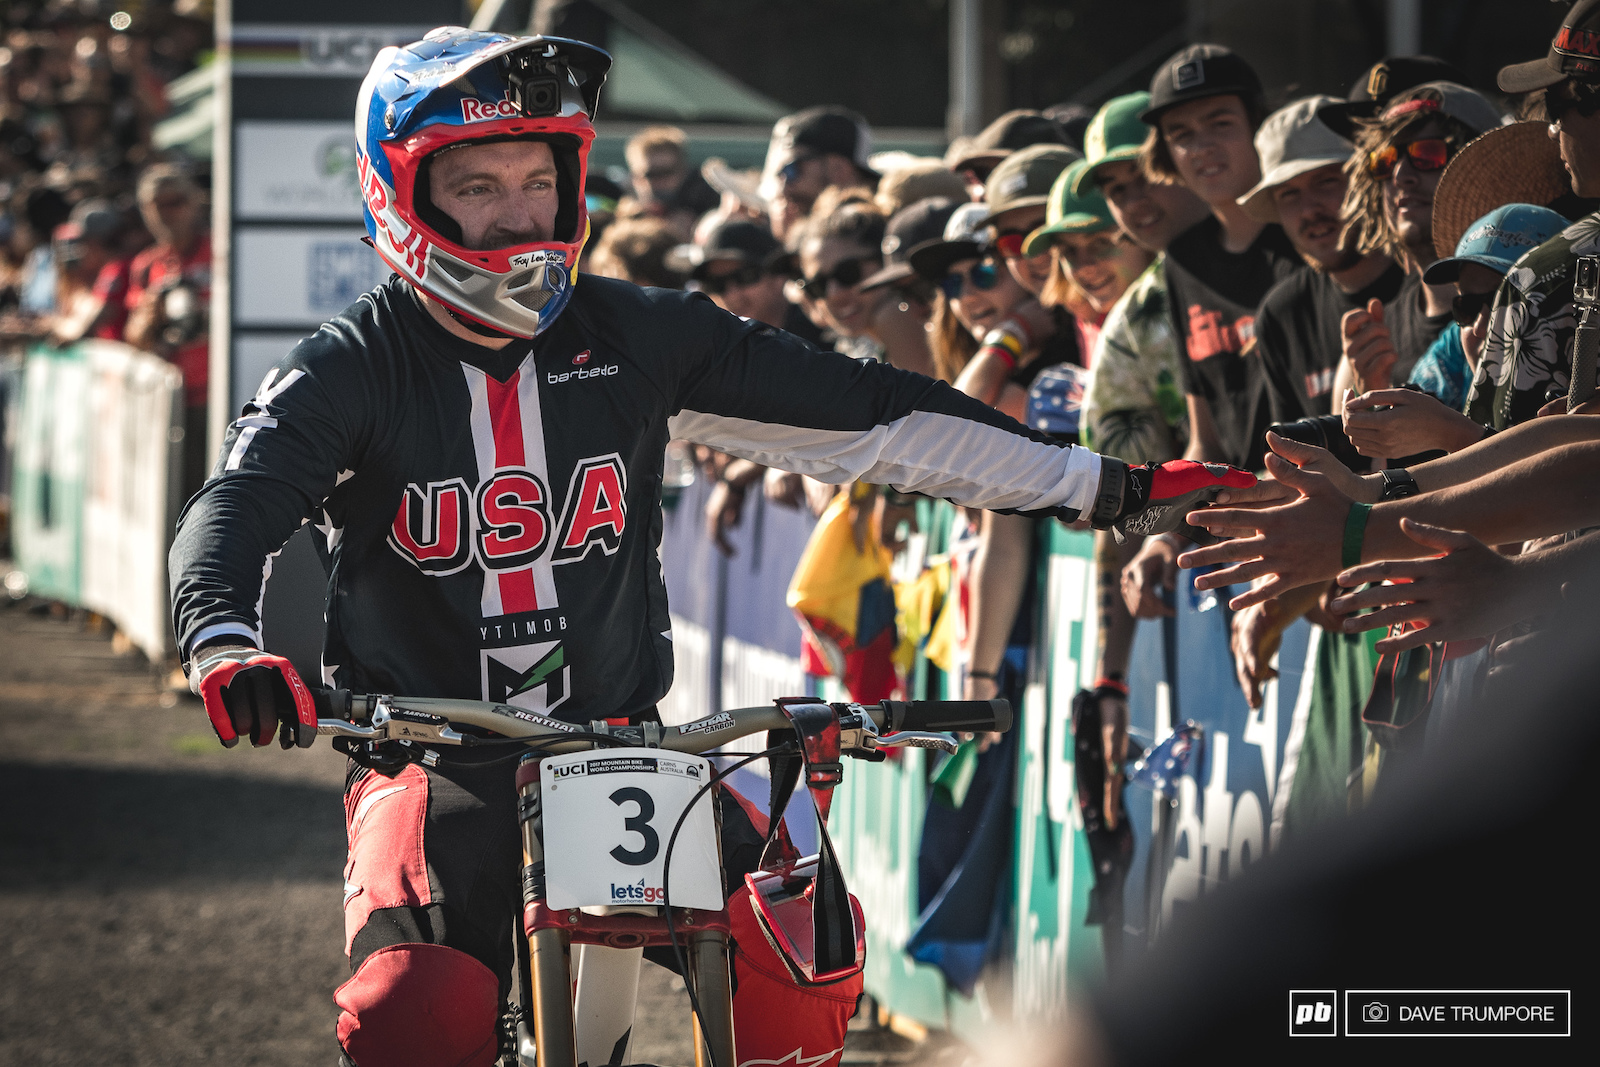 After grabbing the WC title a few weeks back Aaron Gwin finally got himself that elusive world champs medal.